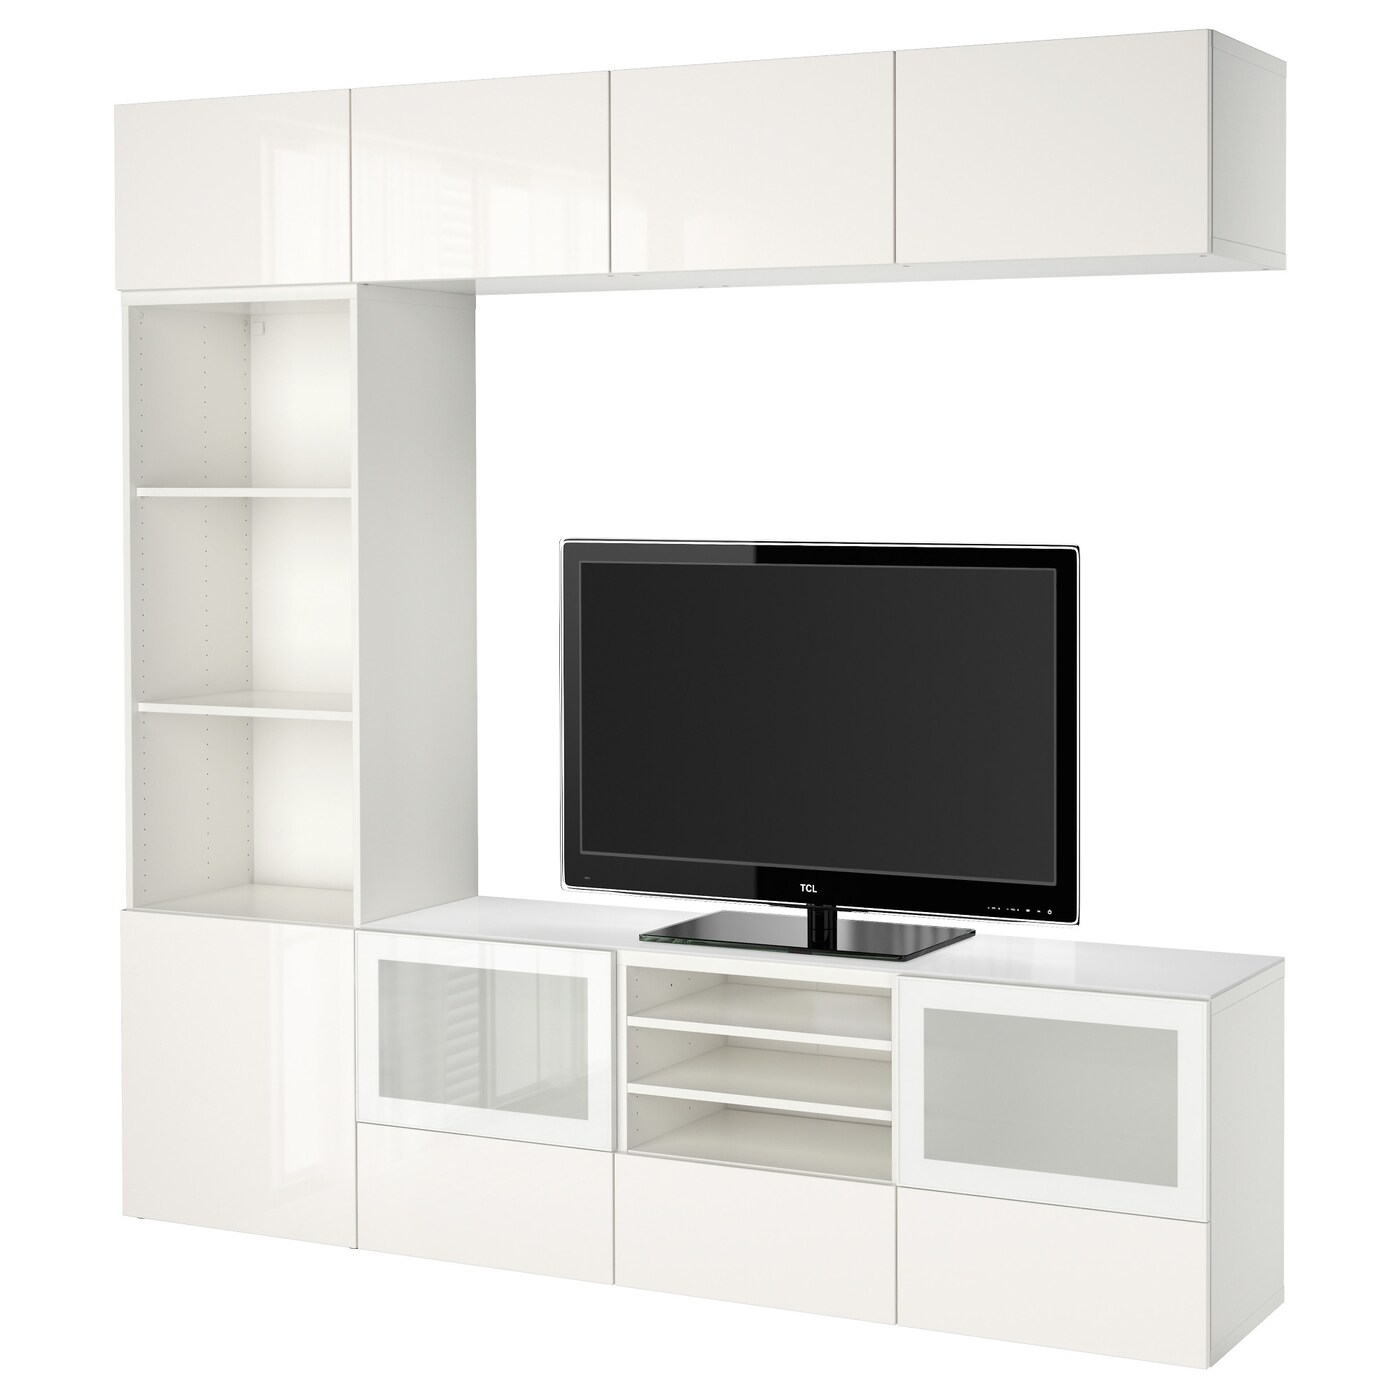 Besta Ecklösung BestÅ Tv Storage Combination Glass Doors White Selsviken